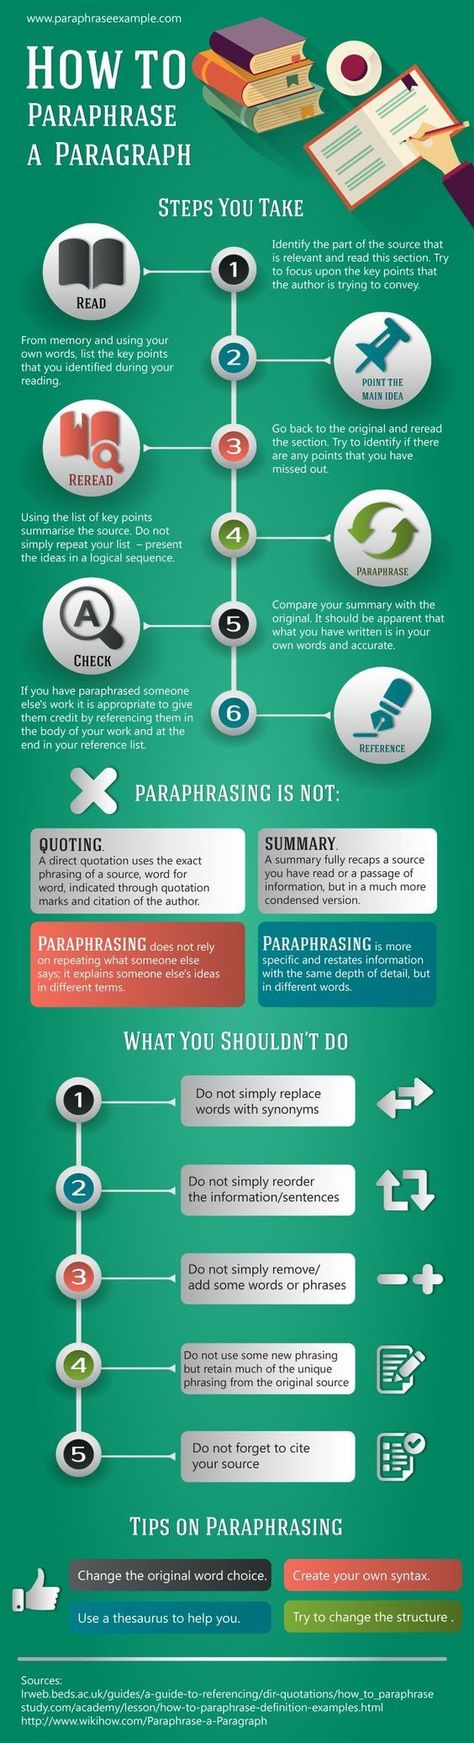 101 Pinterest The World S Catalog Of Idea Teaching Writing Services Describe Two Step Proces To Use When Paraphrasing A Source